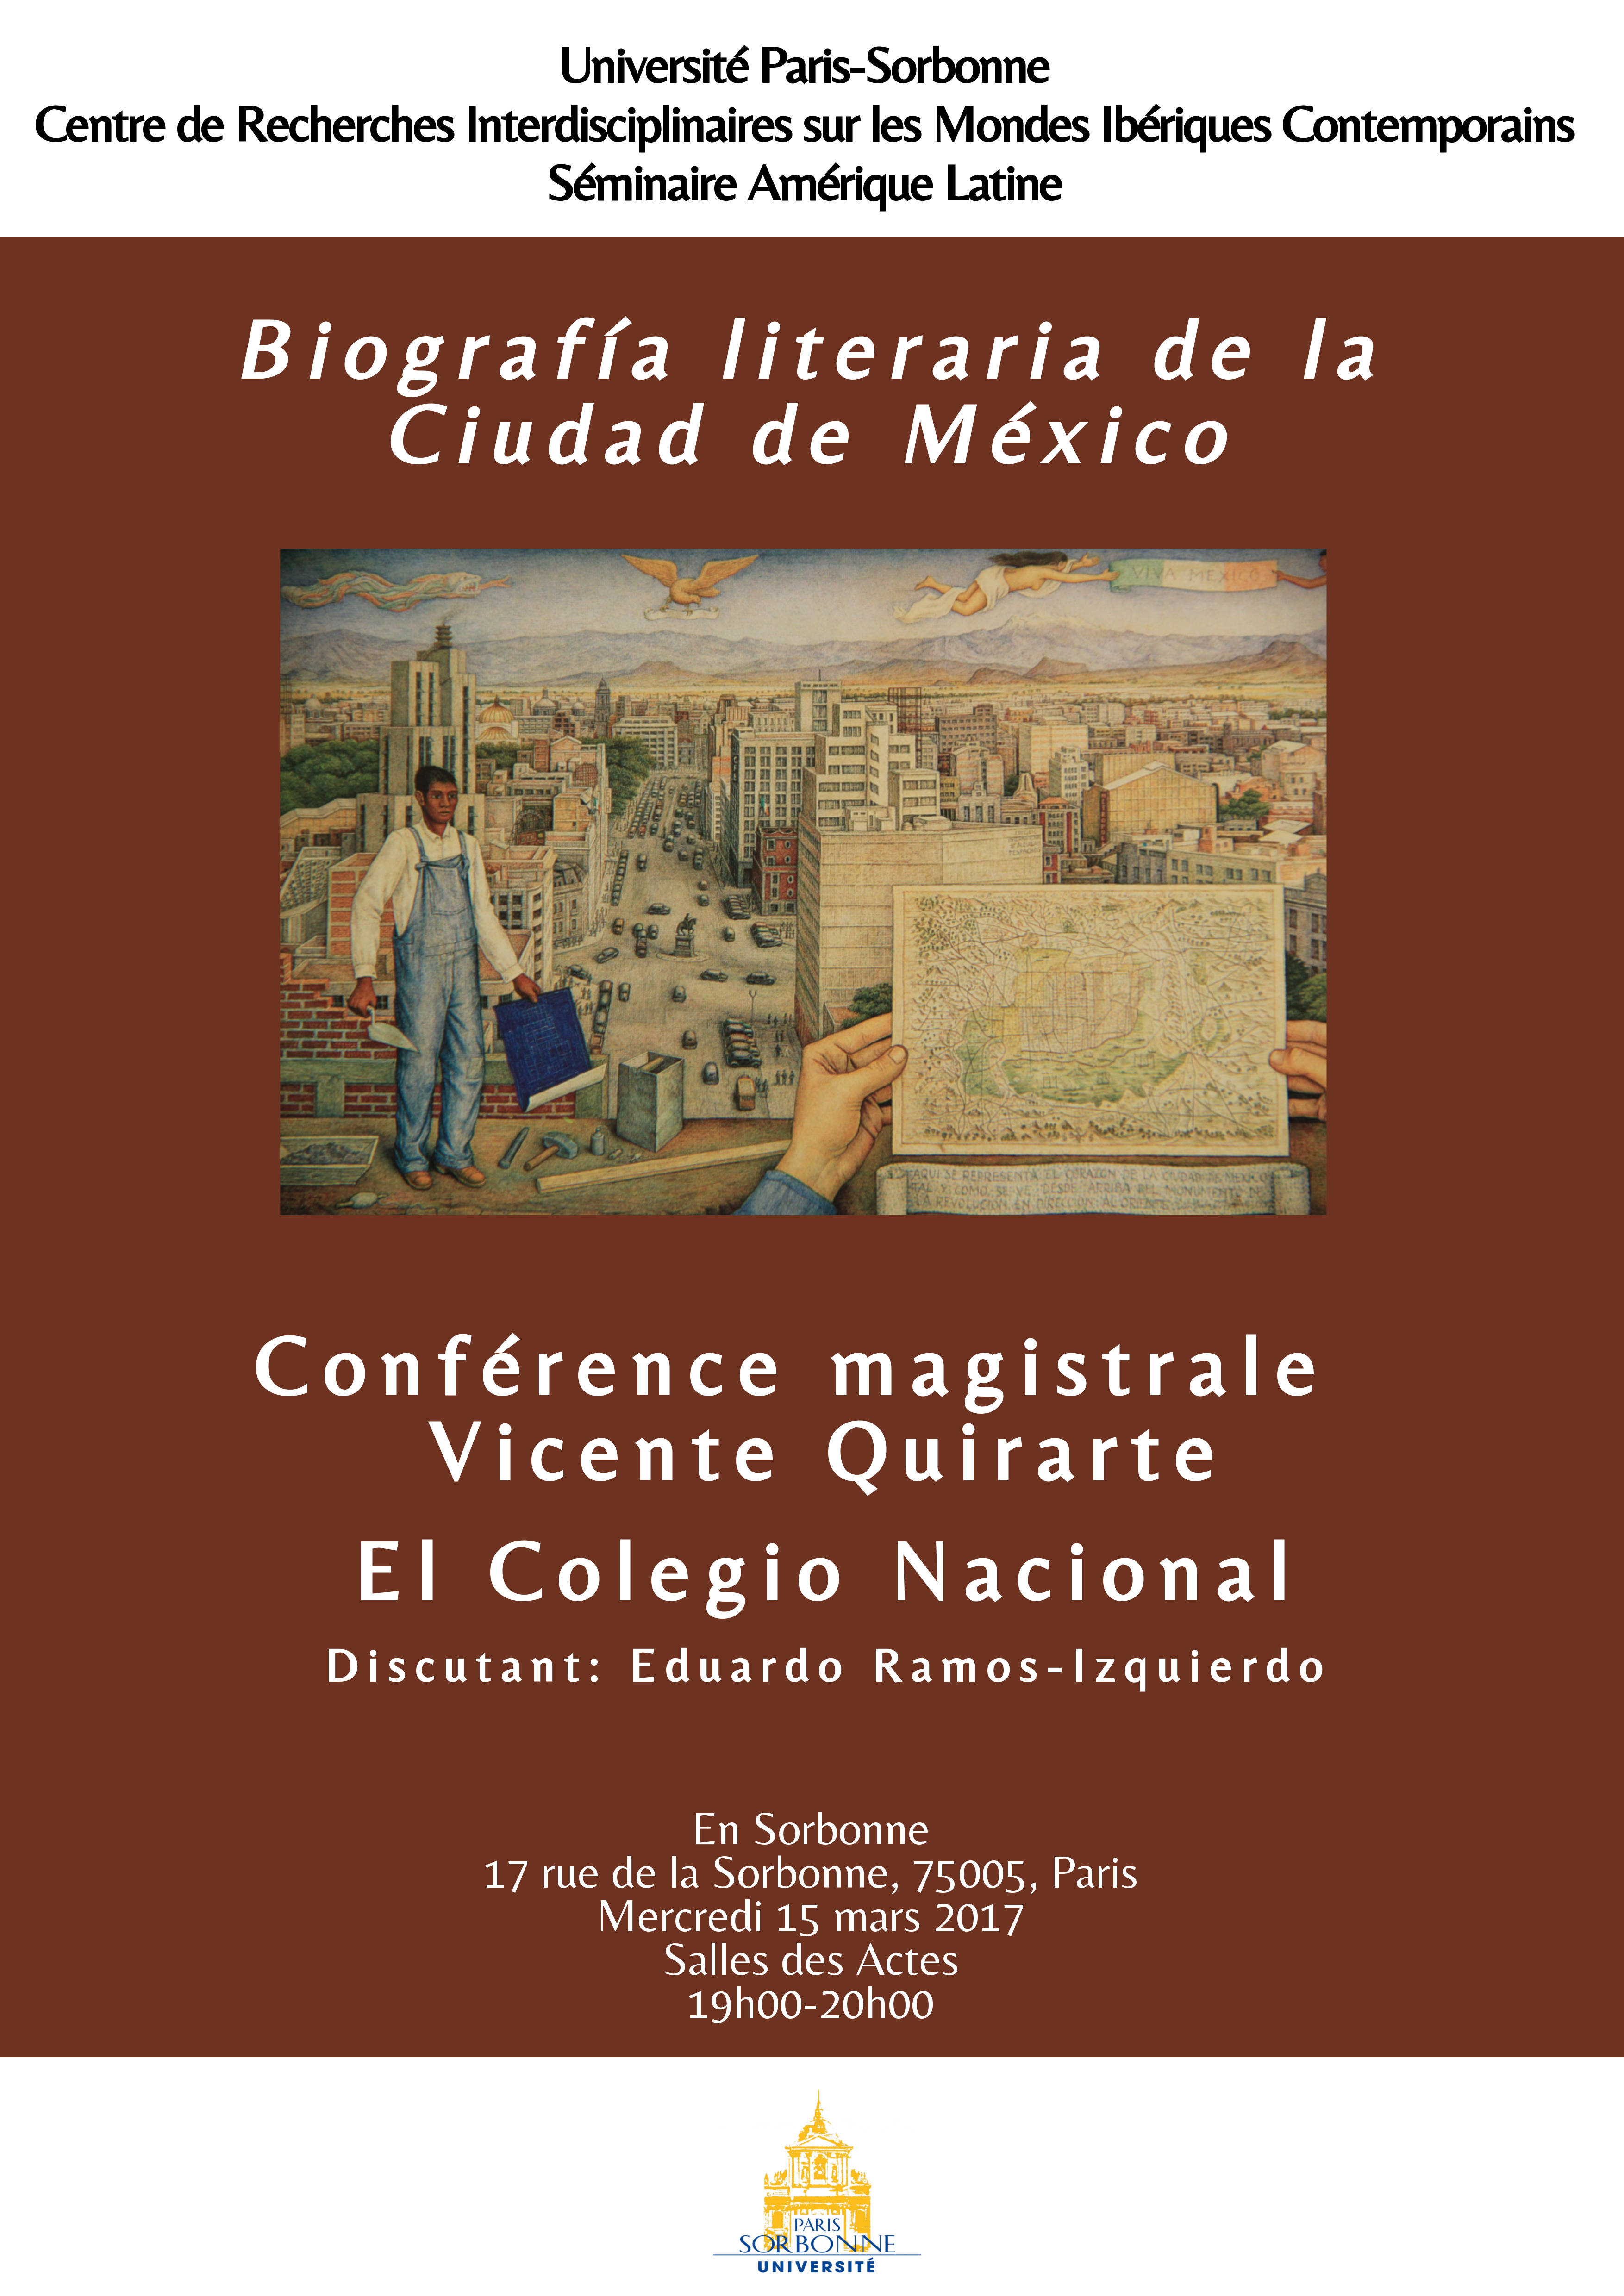 Conférence magistrale Vicente Quirarte